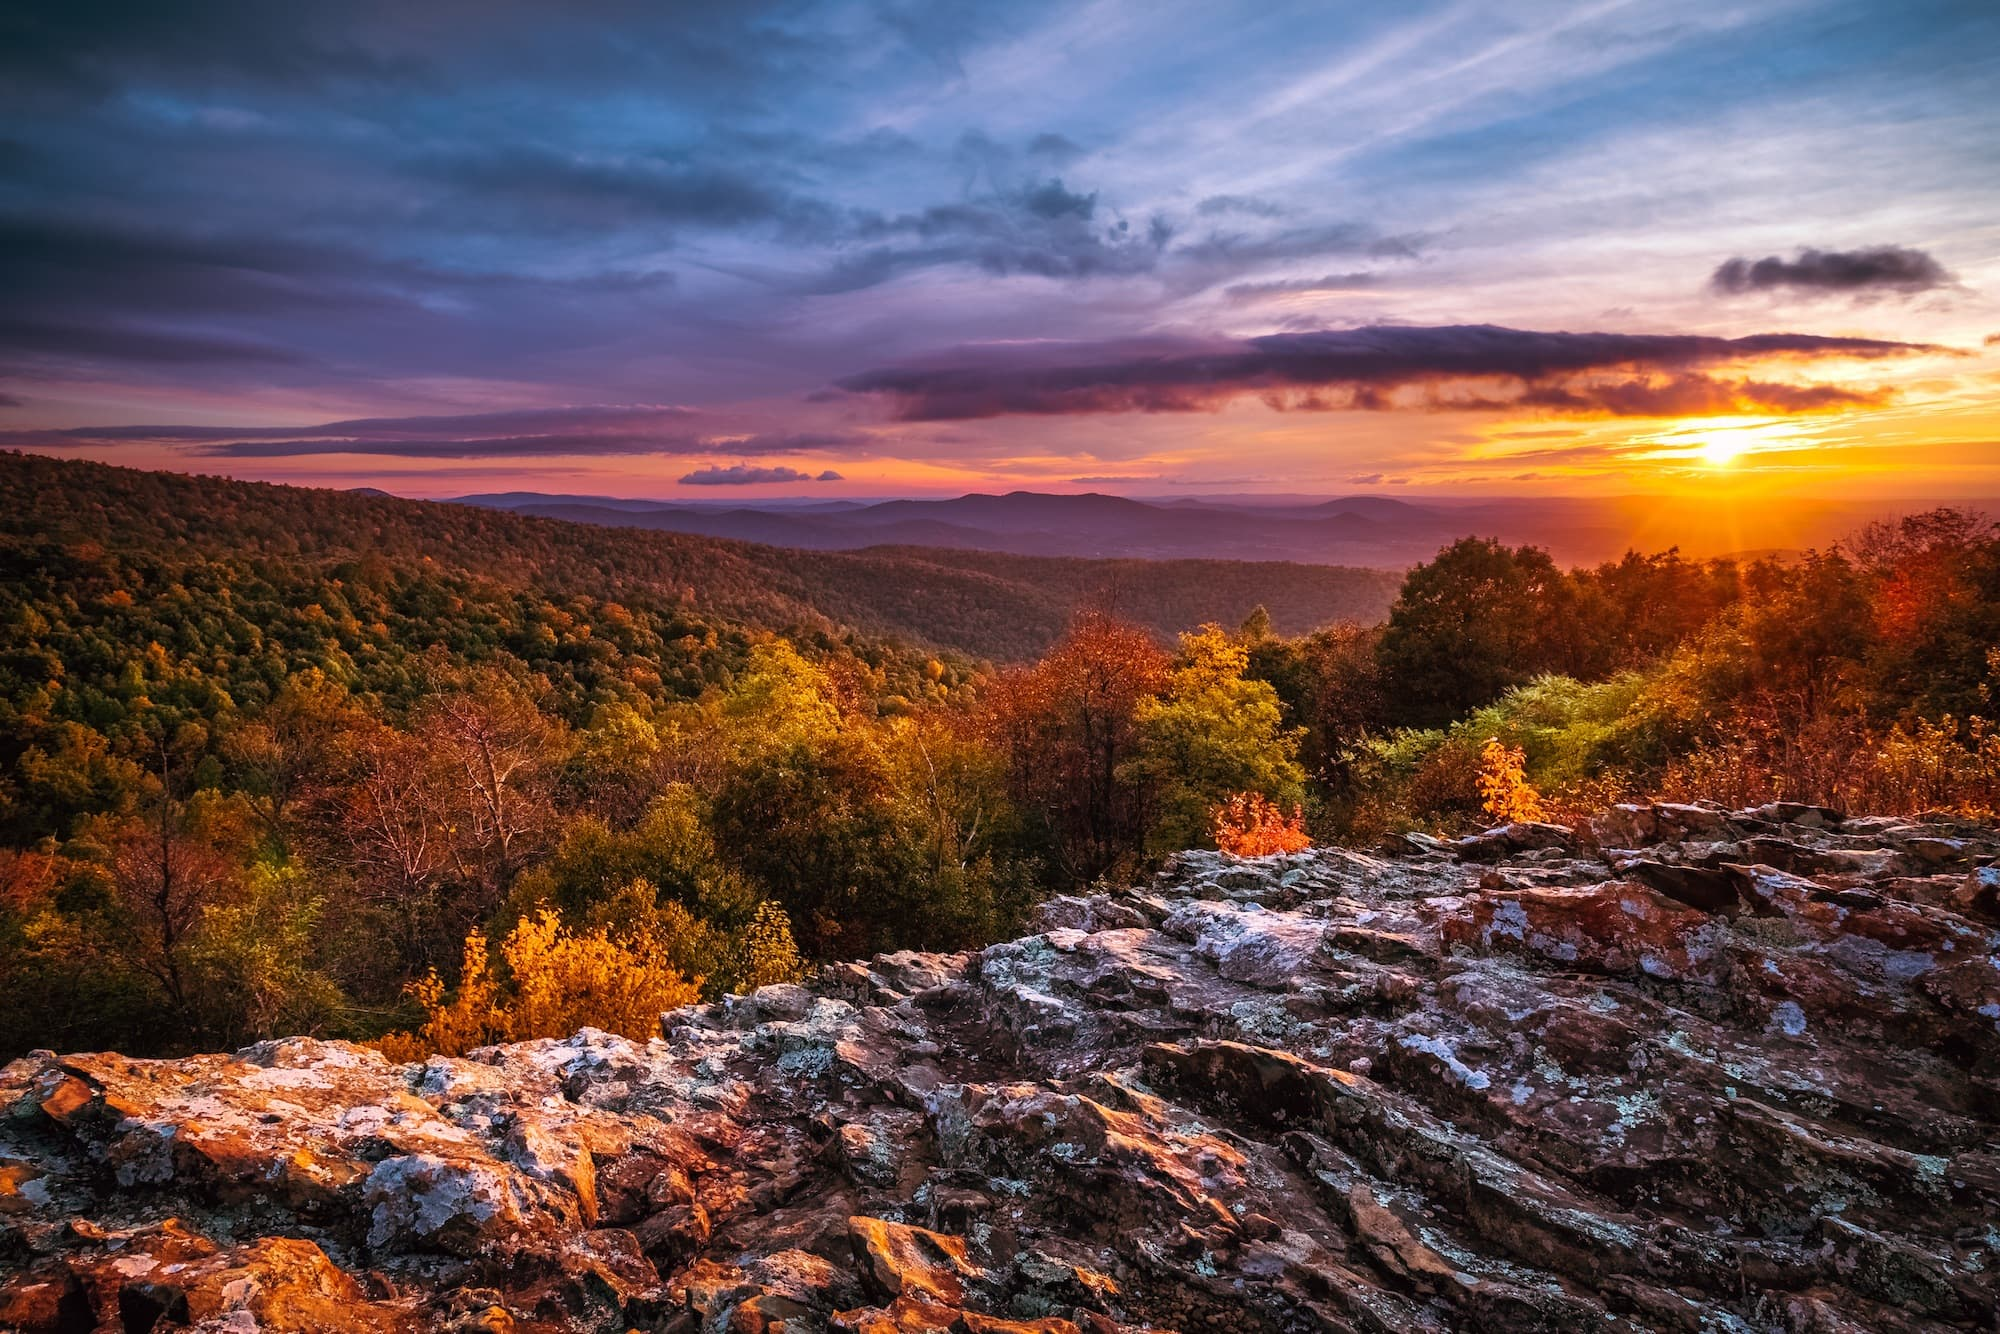 Shenendoah National Park // Discover the best National Parks to visit during fall for fall colors and foliage. Get tips on hikes, scenic drives, and more.